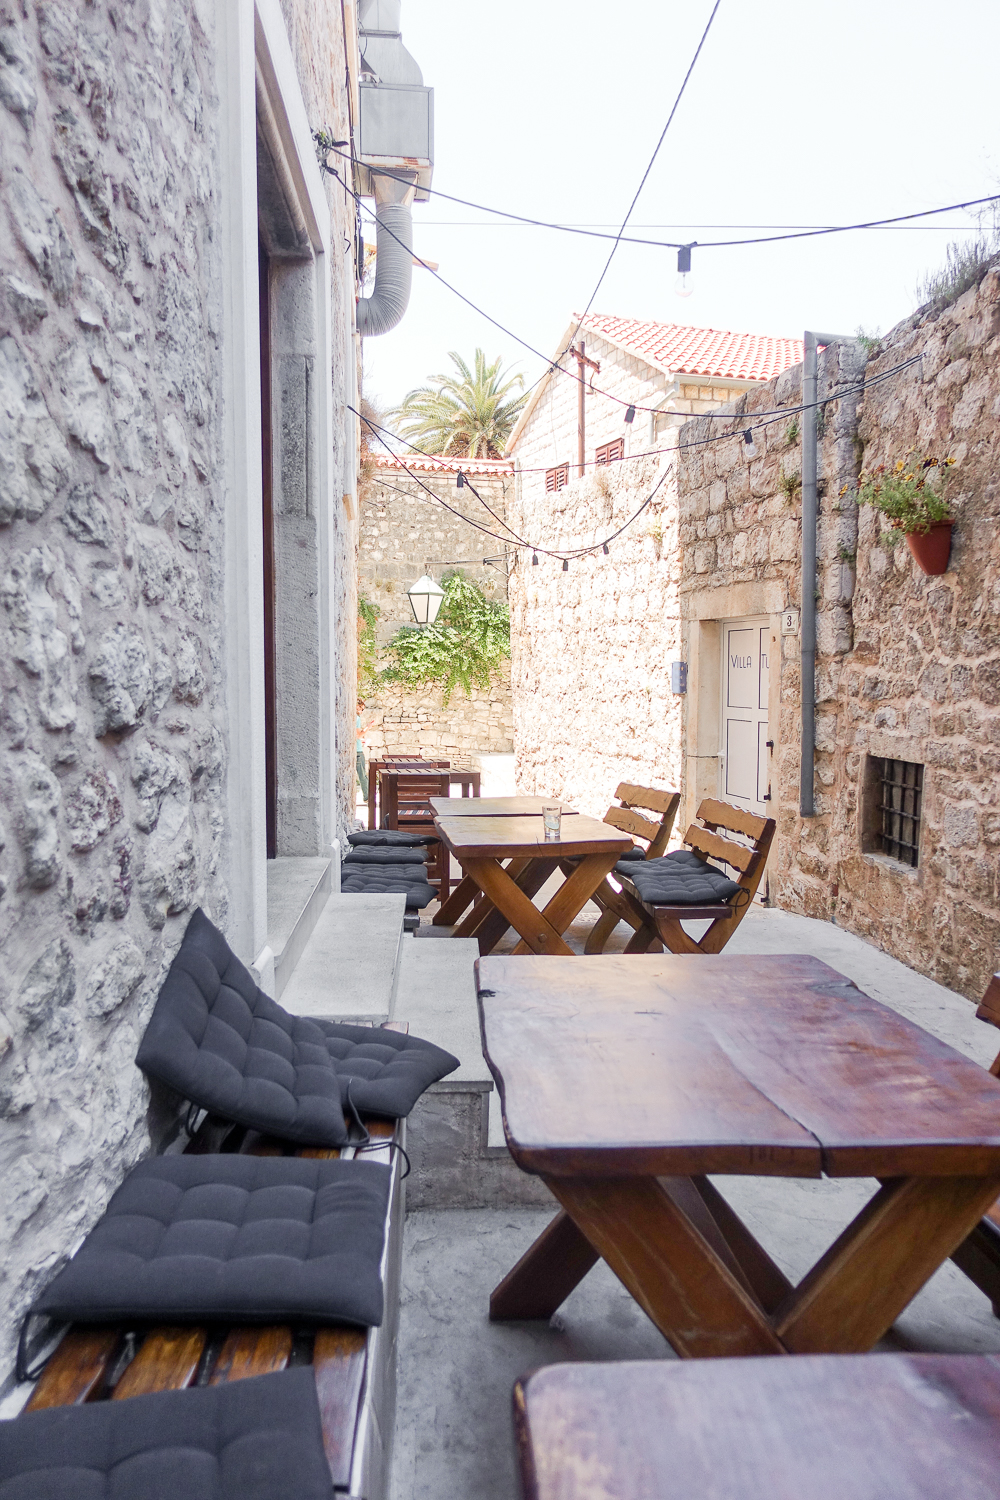 fig-cafe-hvar-review-where-to-eat-croatia-food-travel-guide-blogger